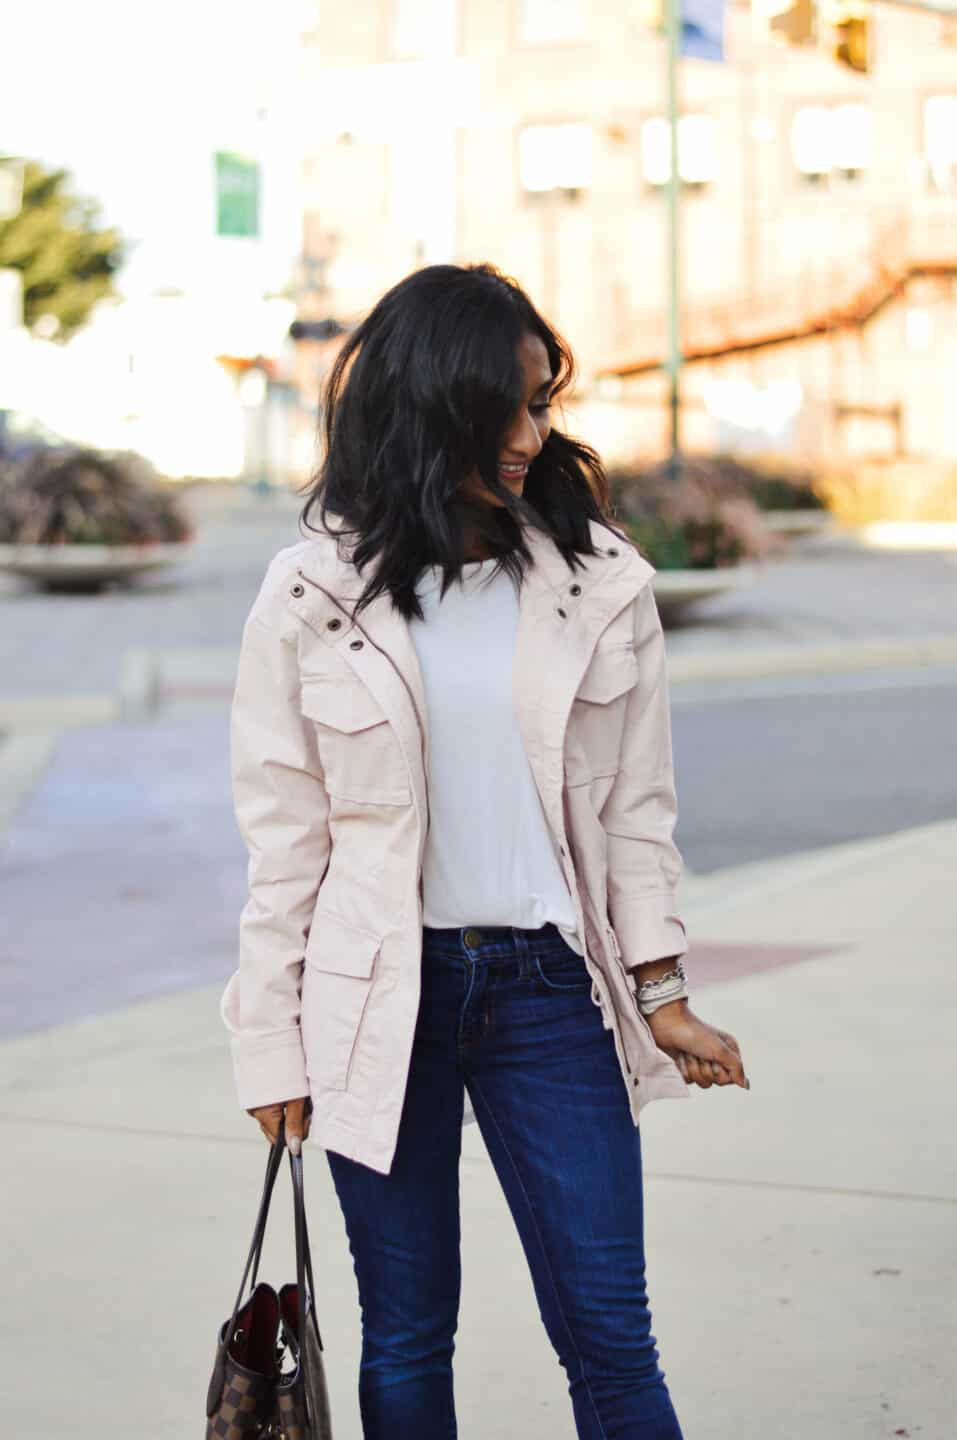 Utility Jacket Outfit for the Spring